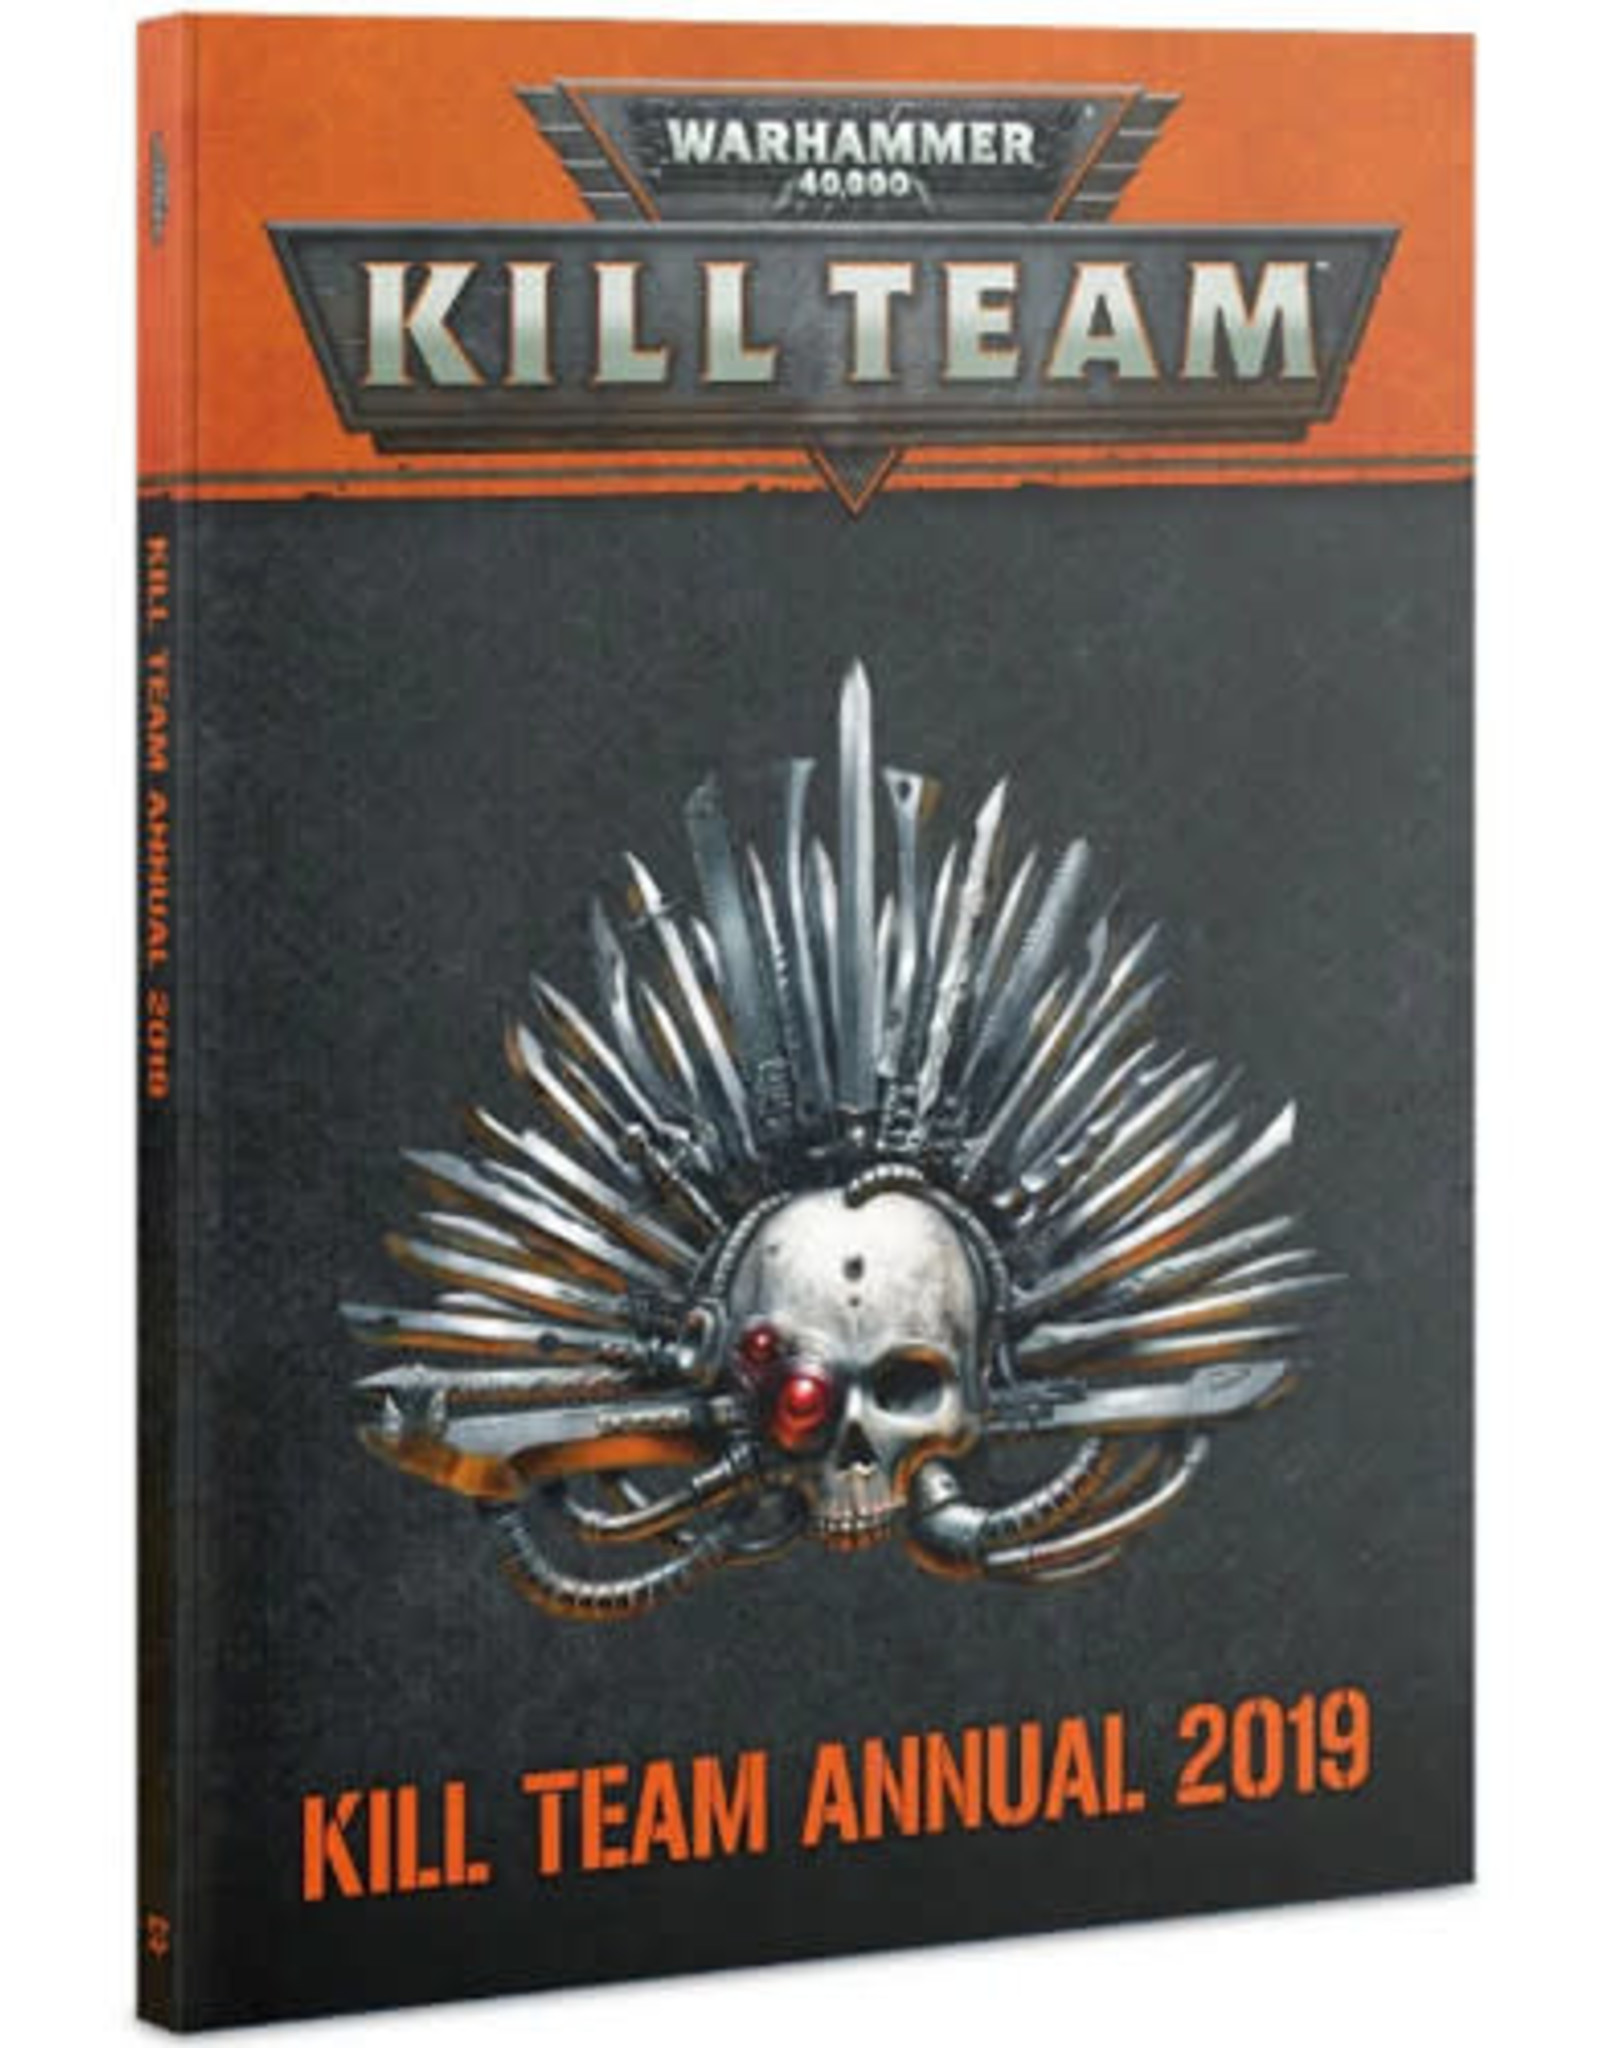 Games Workshop Warhammer 40K Kill Team - Annual 2019 (Softcover)